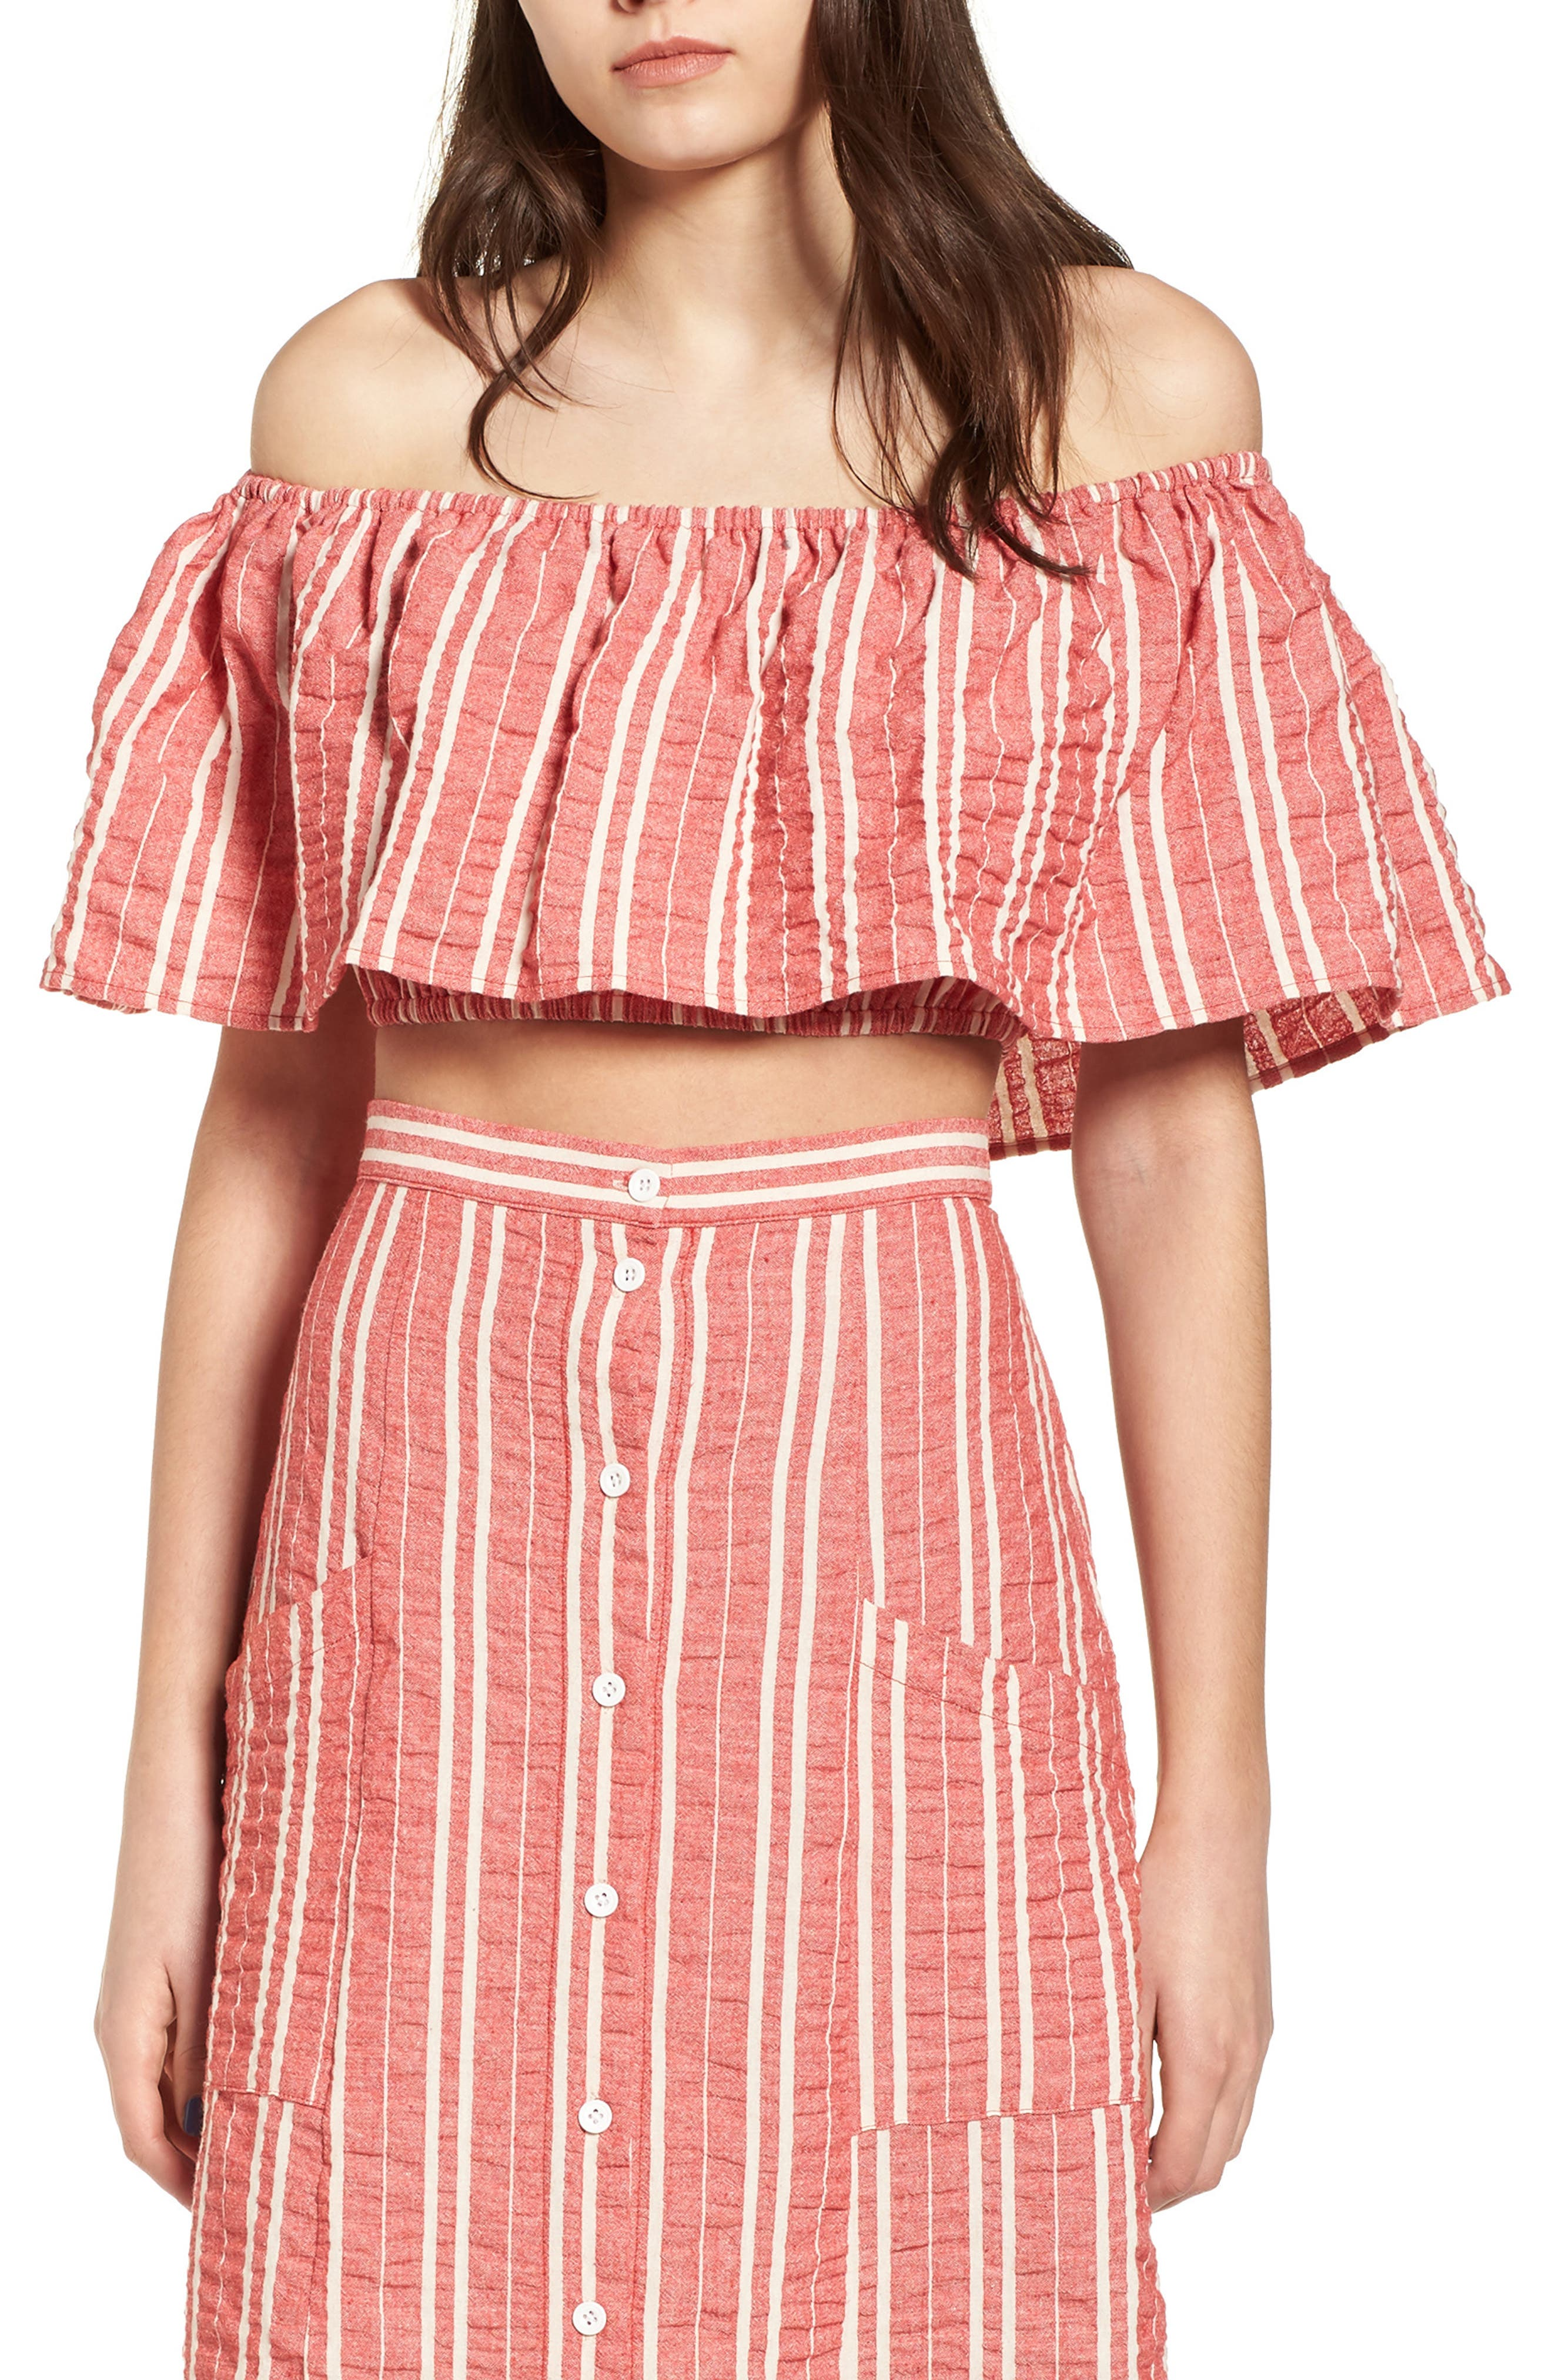 LOST + WANDER,                             Robin Popover Off the Shoulder Top,                             Main thumbnail 1, color,                             641